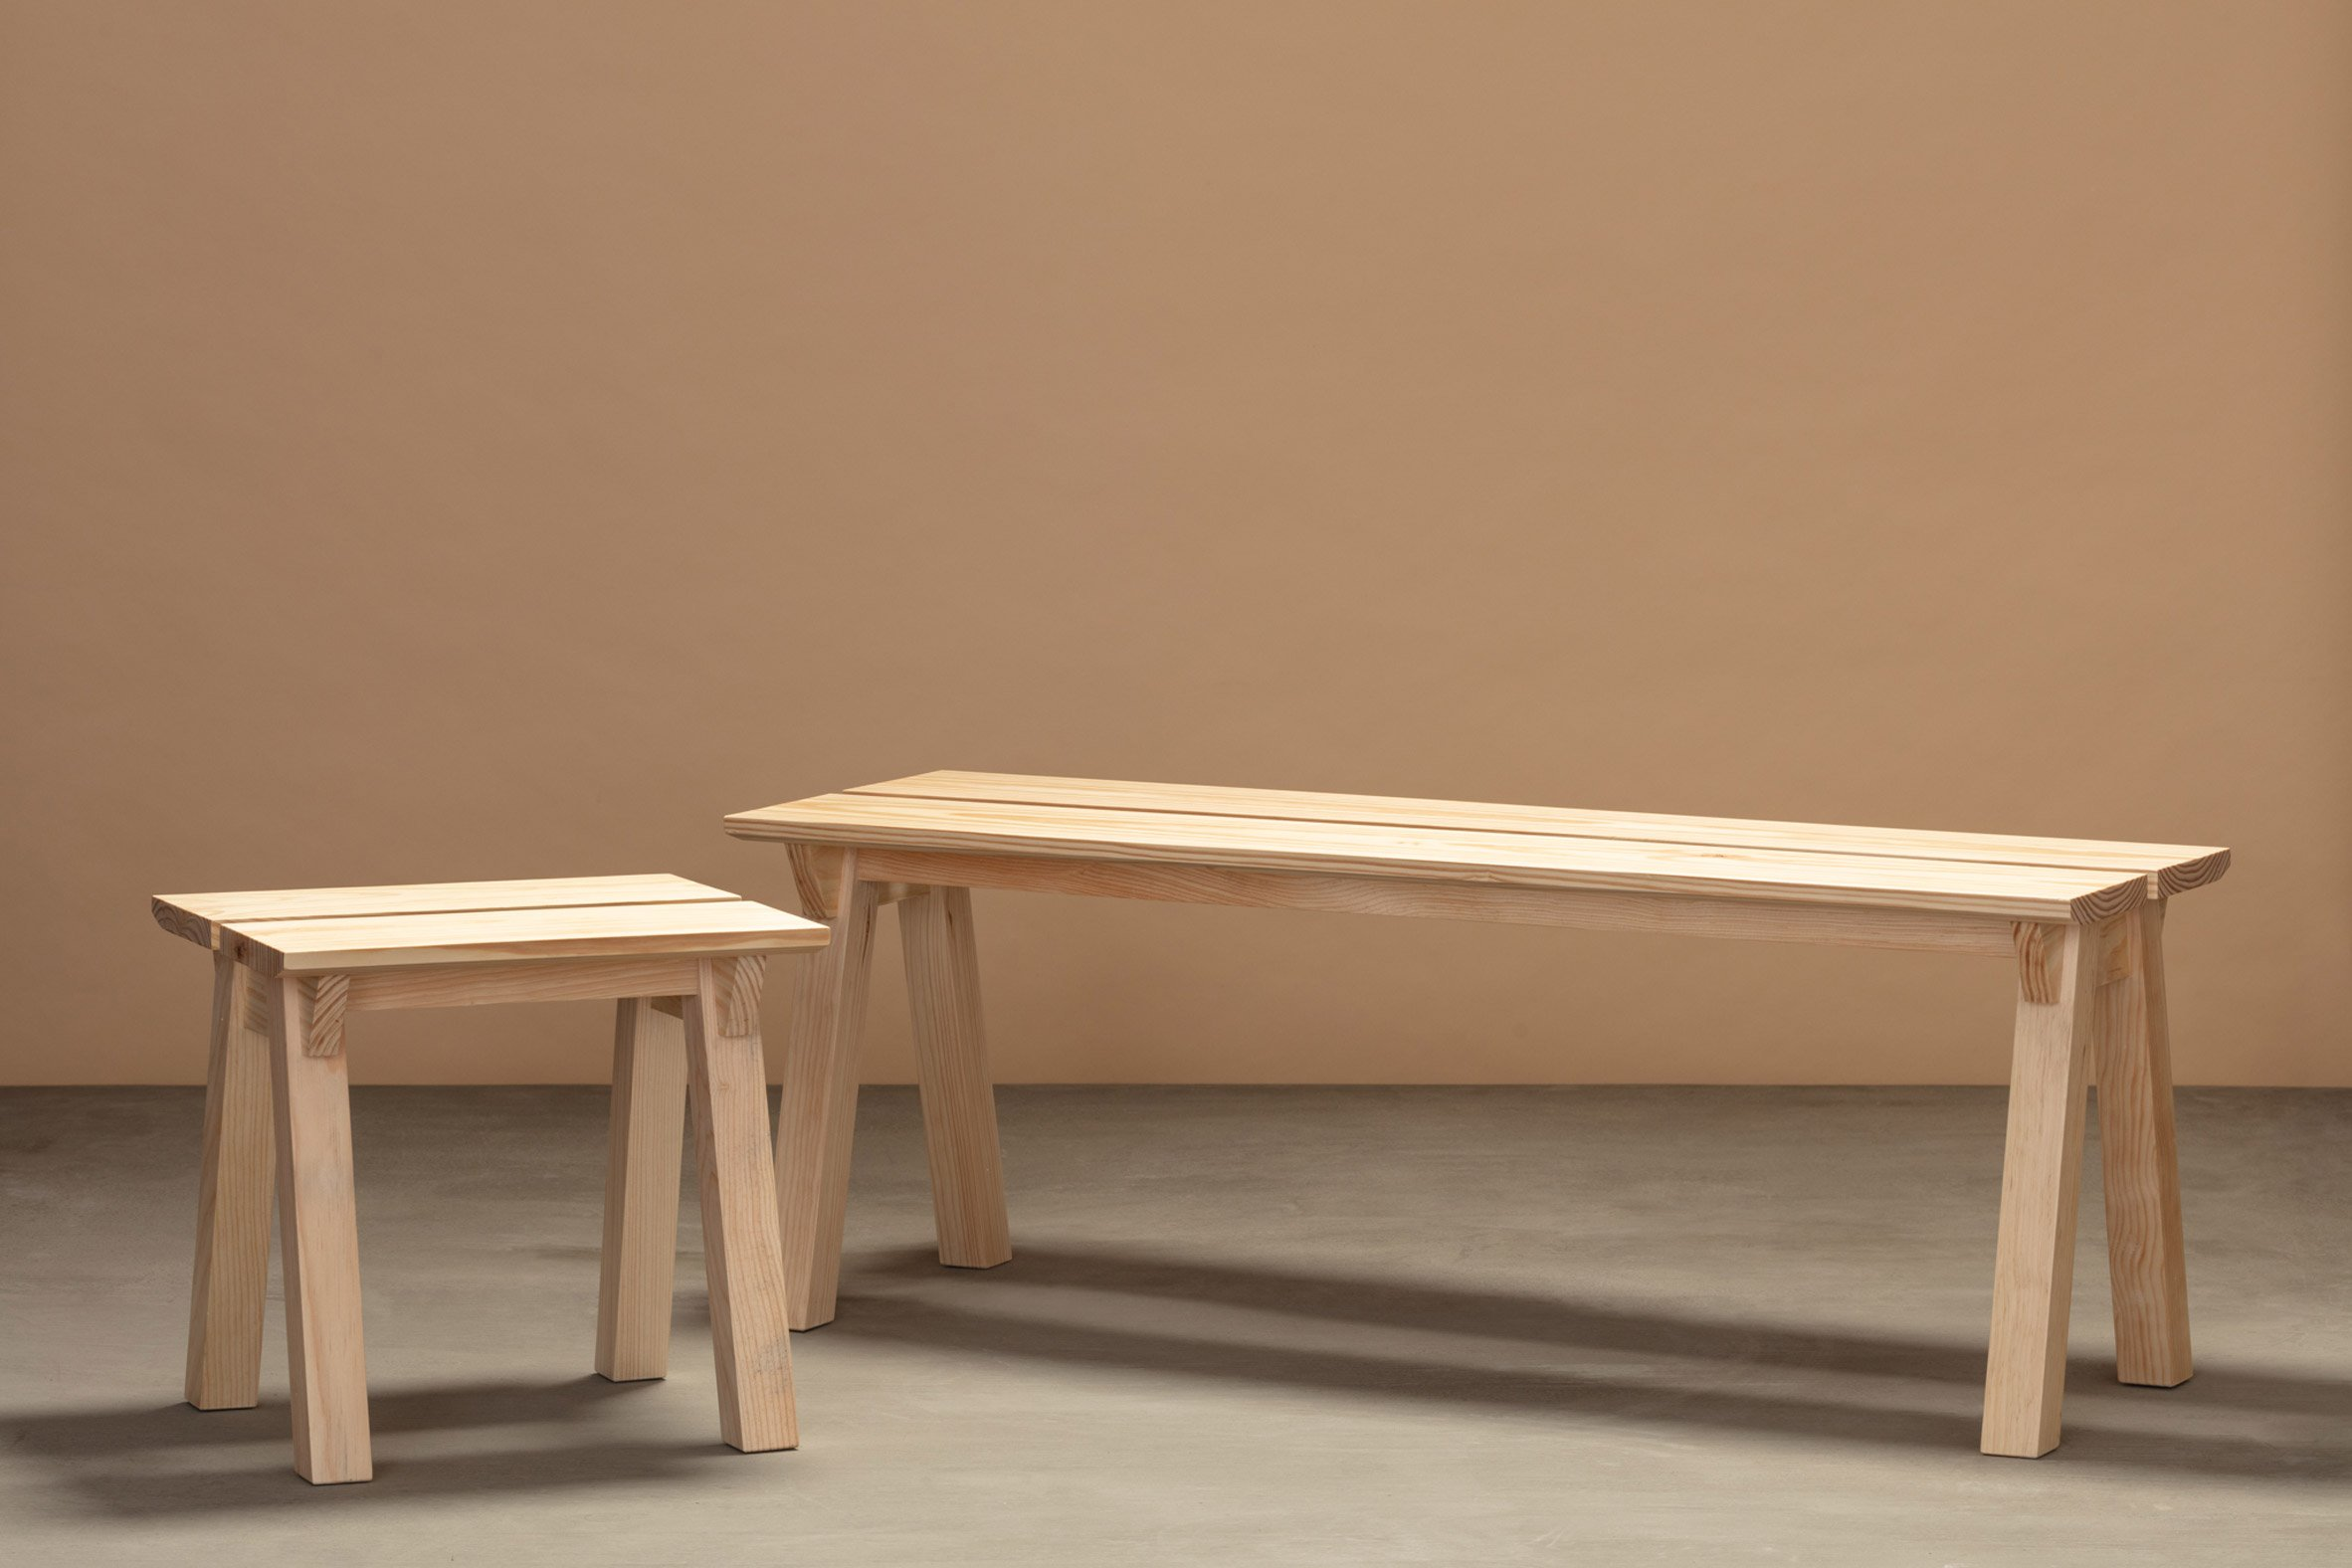 Stool and bench from Jorge Diego Etienne's Tempo collection for Techo